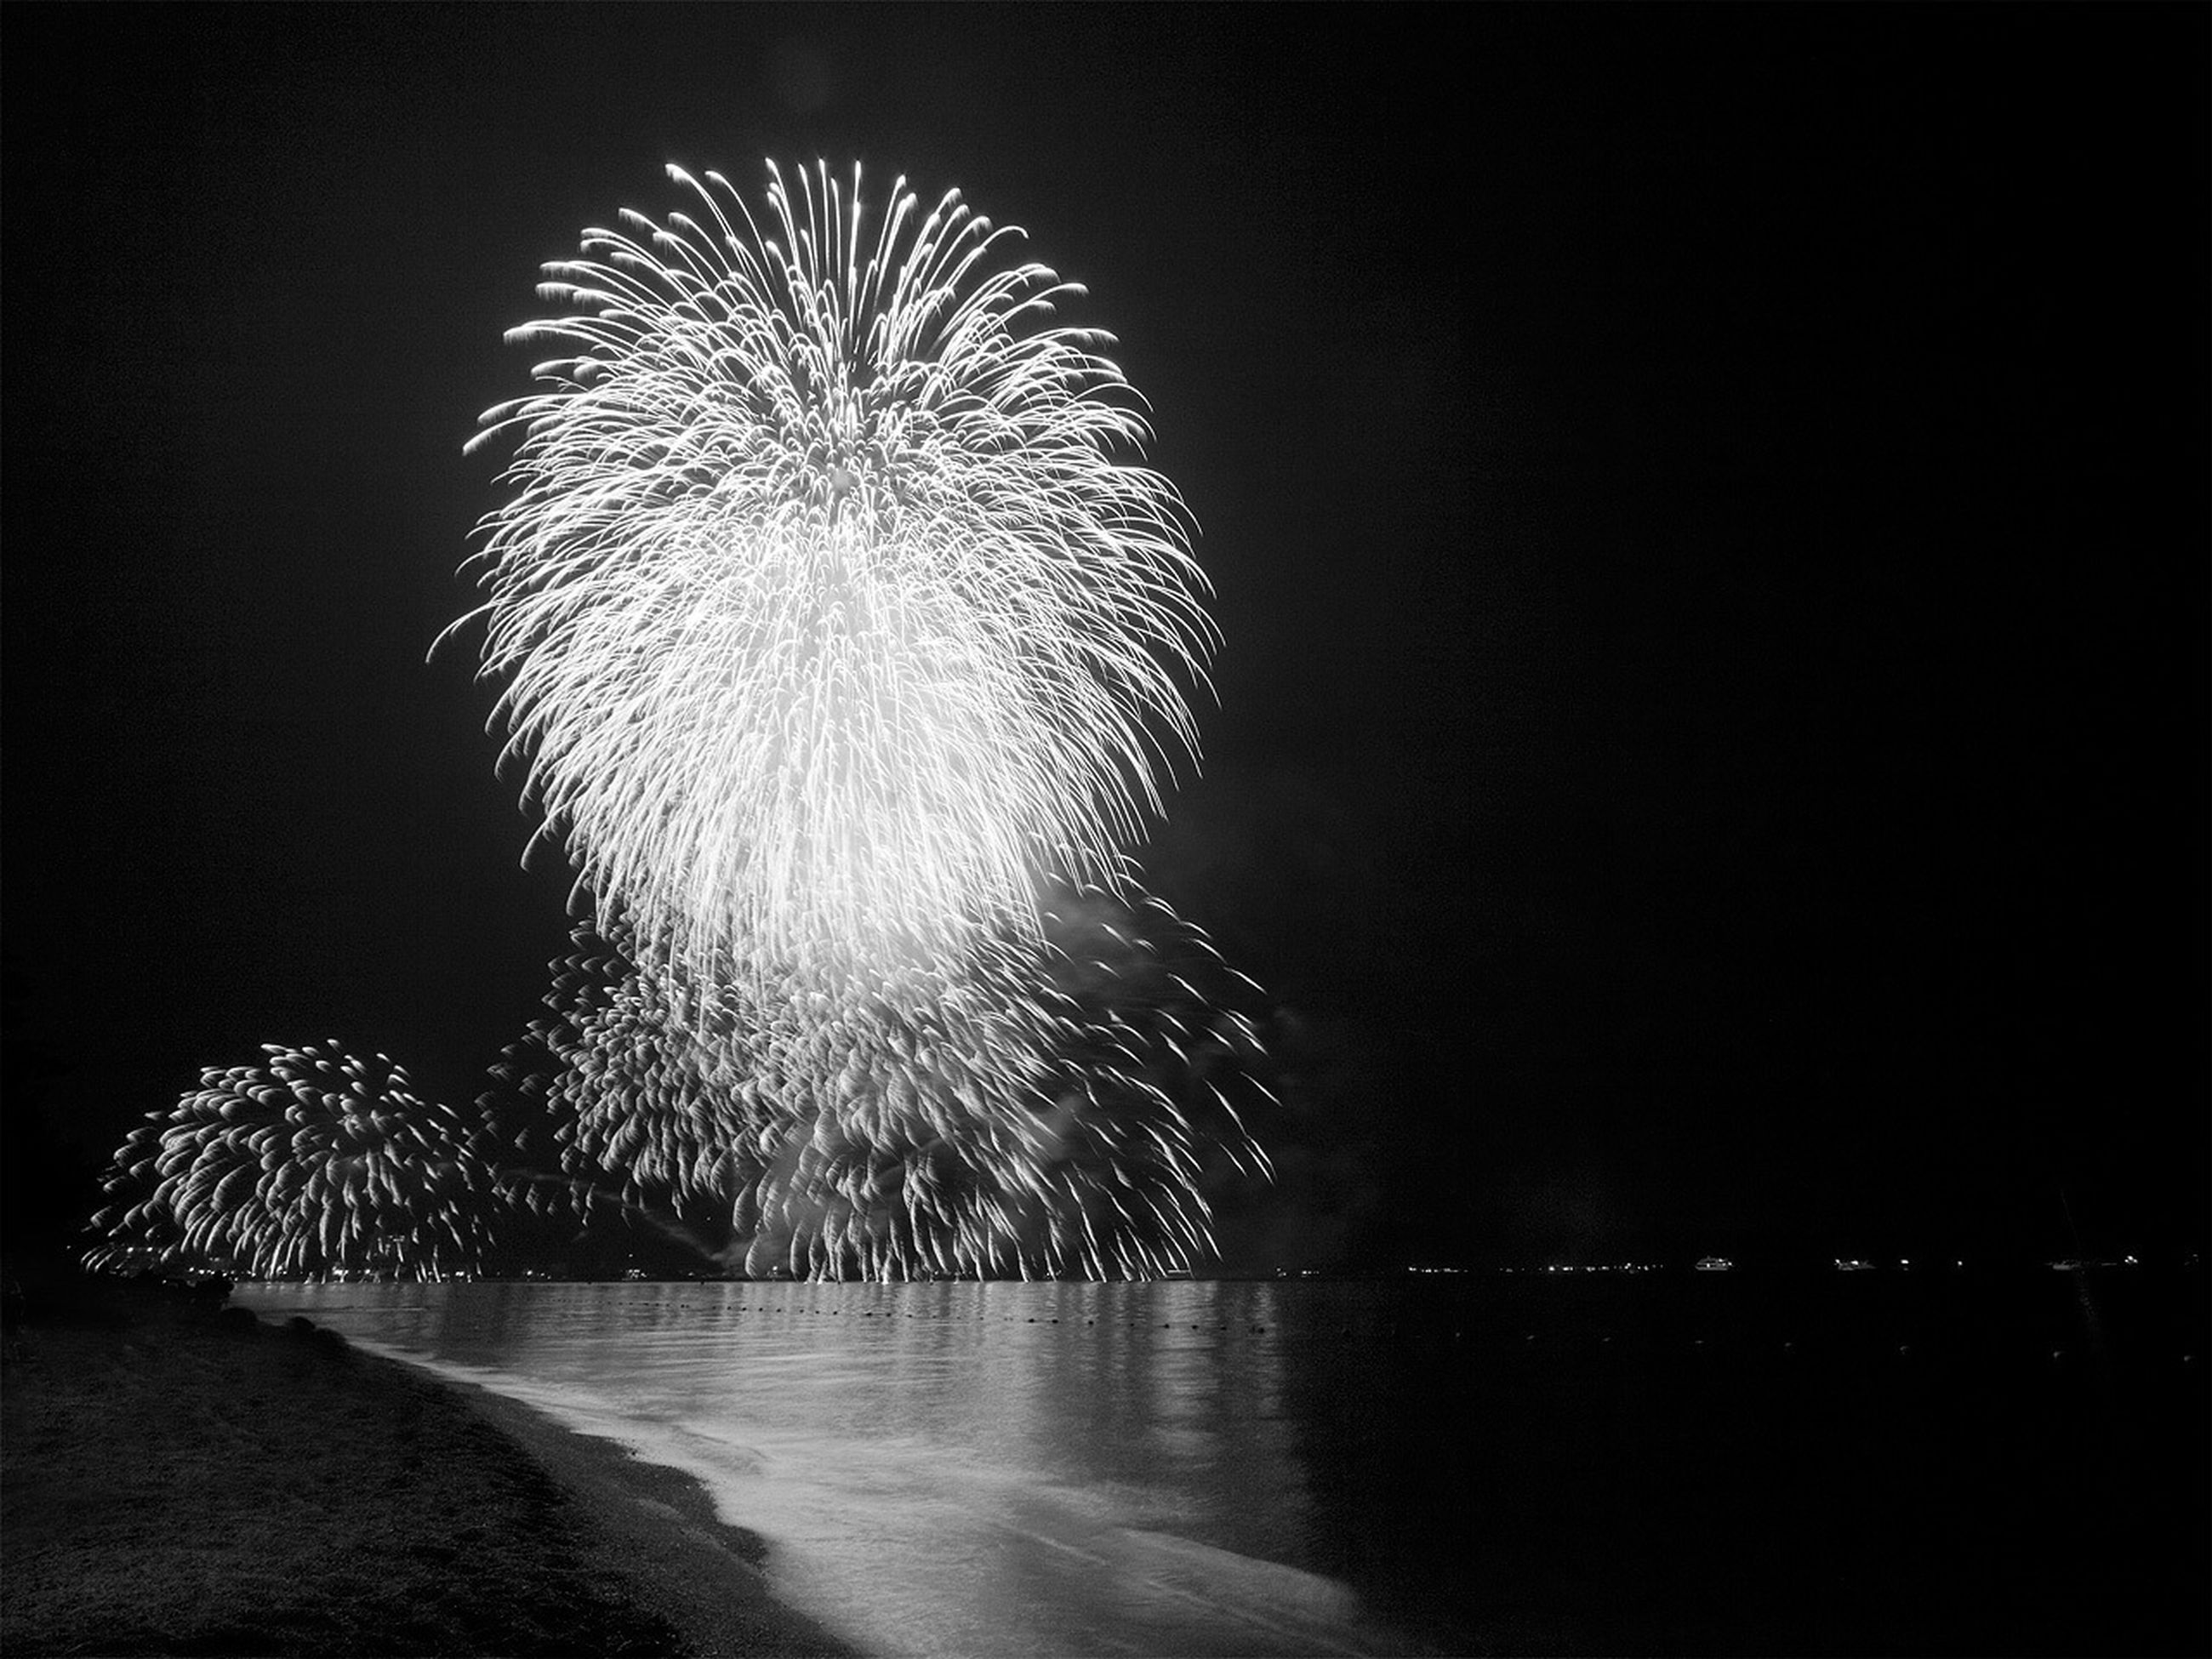 night, illuminated, firework display, long exposure, exploding, glowing, motion, celebration, firework - man made object, sparks, clear sky, arts culture and entertainment, sky, blurred motion, firework, low angle view, copy space, outdoors, event, entertainment